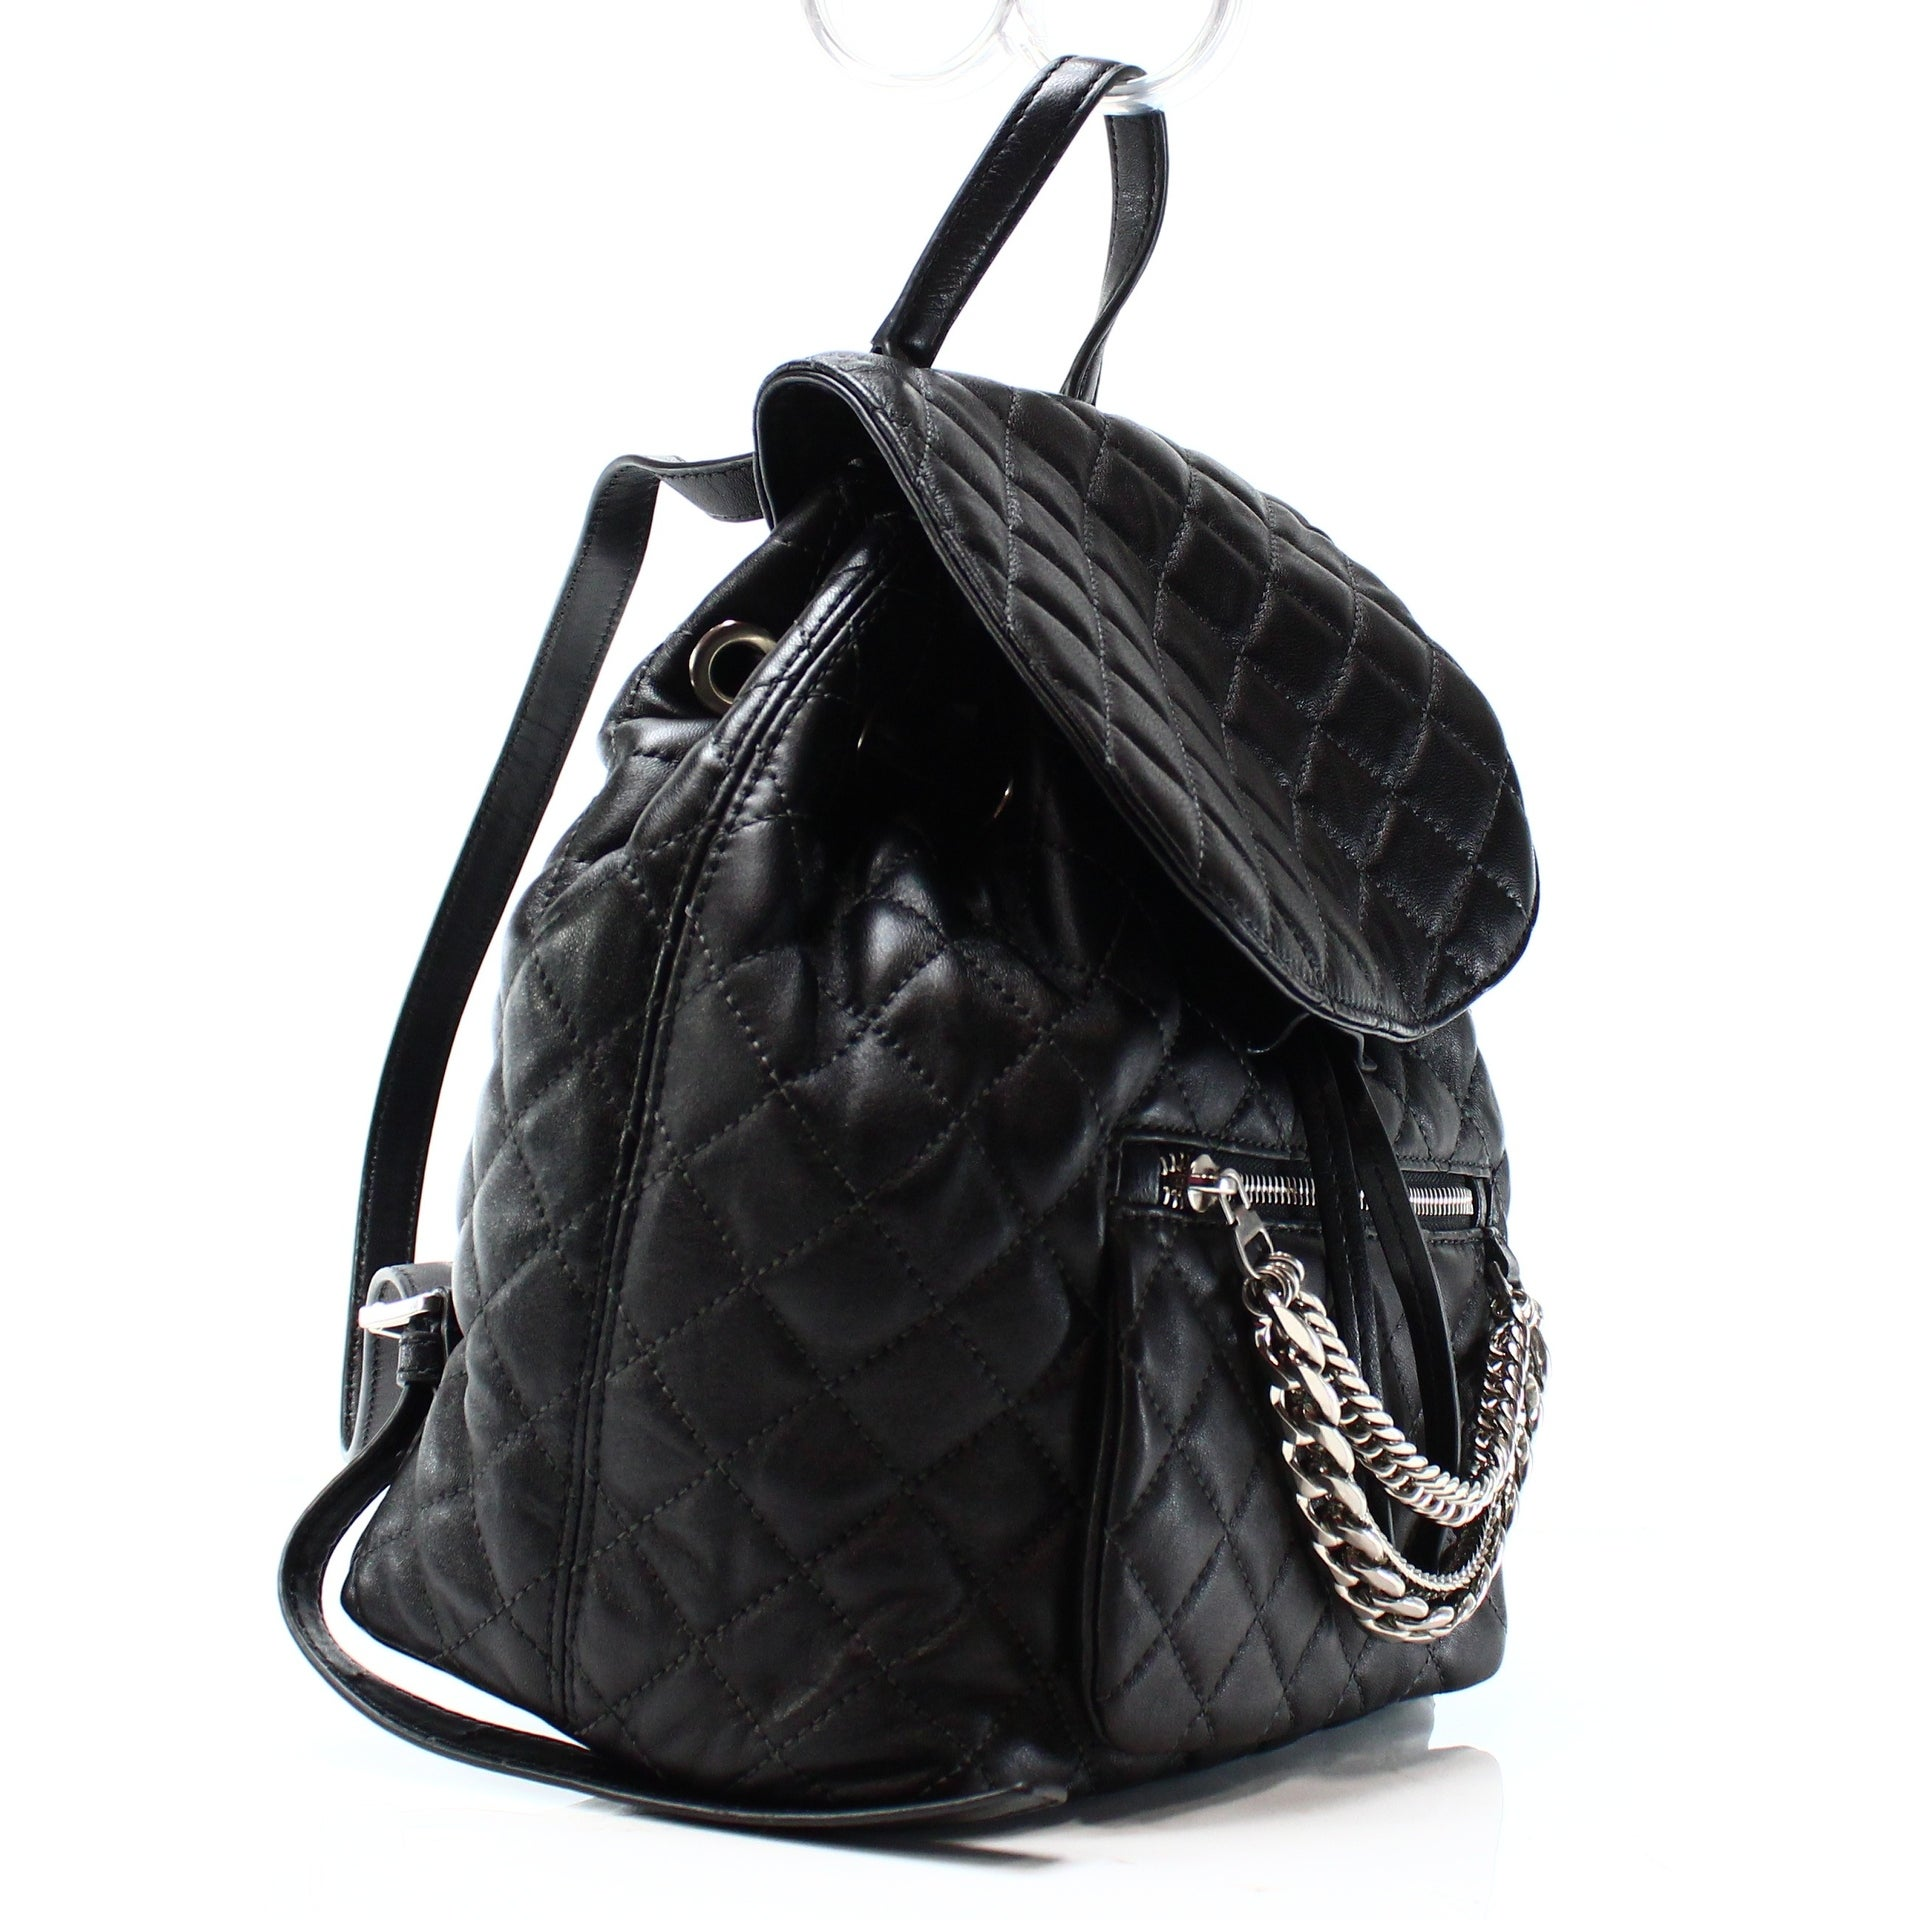 f373b220fdc3 Shop Michael Kors NEW Black Quilted Cheyenne Flap Backpack Drawstring Purse  - Free Shipping Today - Overstock - 19676240